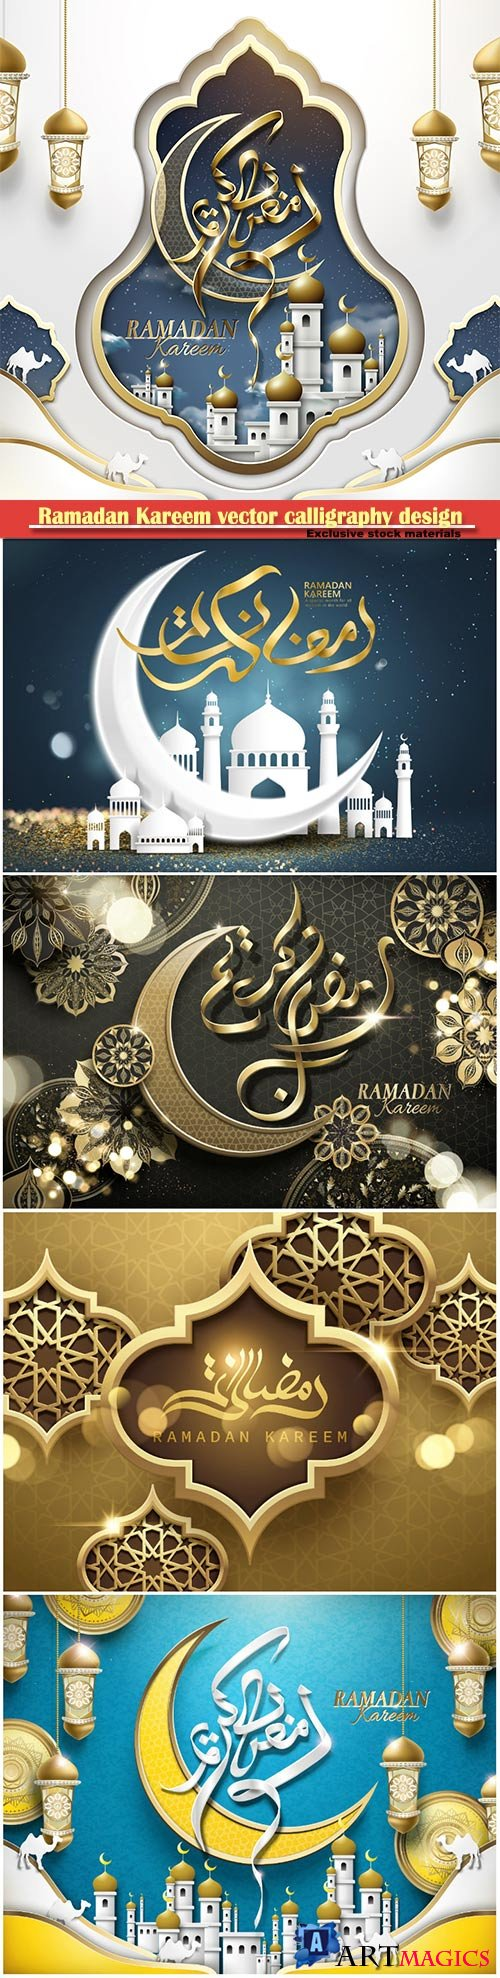 Ramadan Kareem vector calligraphy design with decorative floral pattern,mosque silhouette, crescent and glittering islamic background # 11